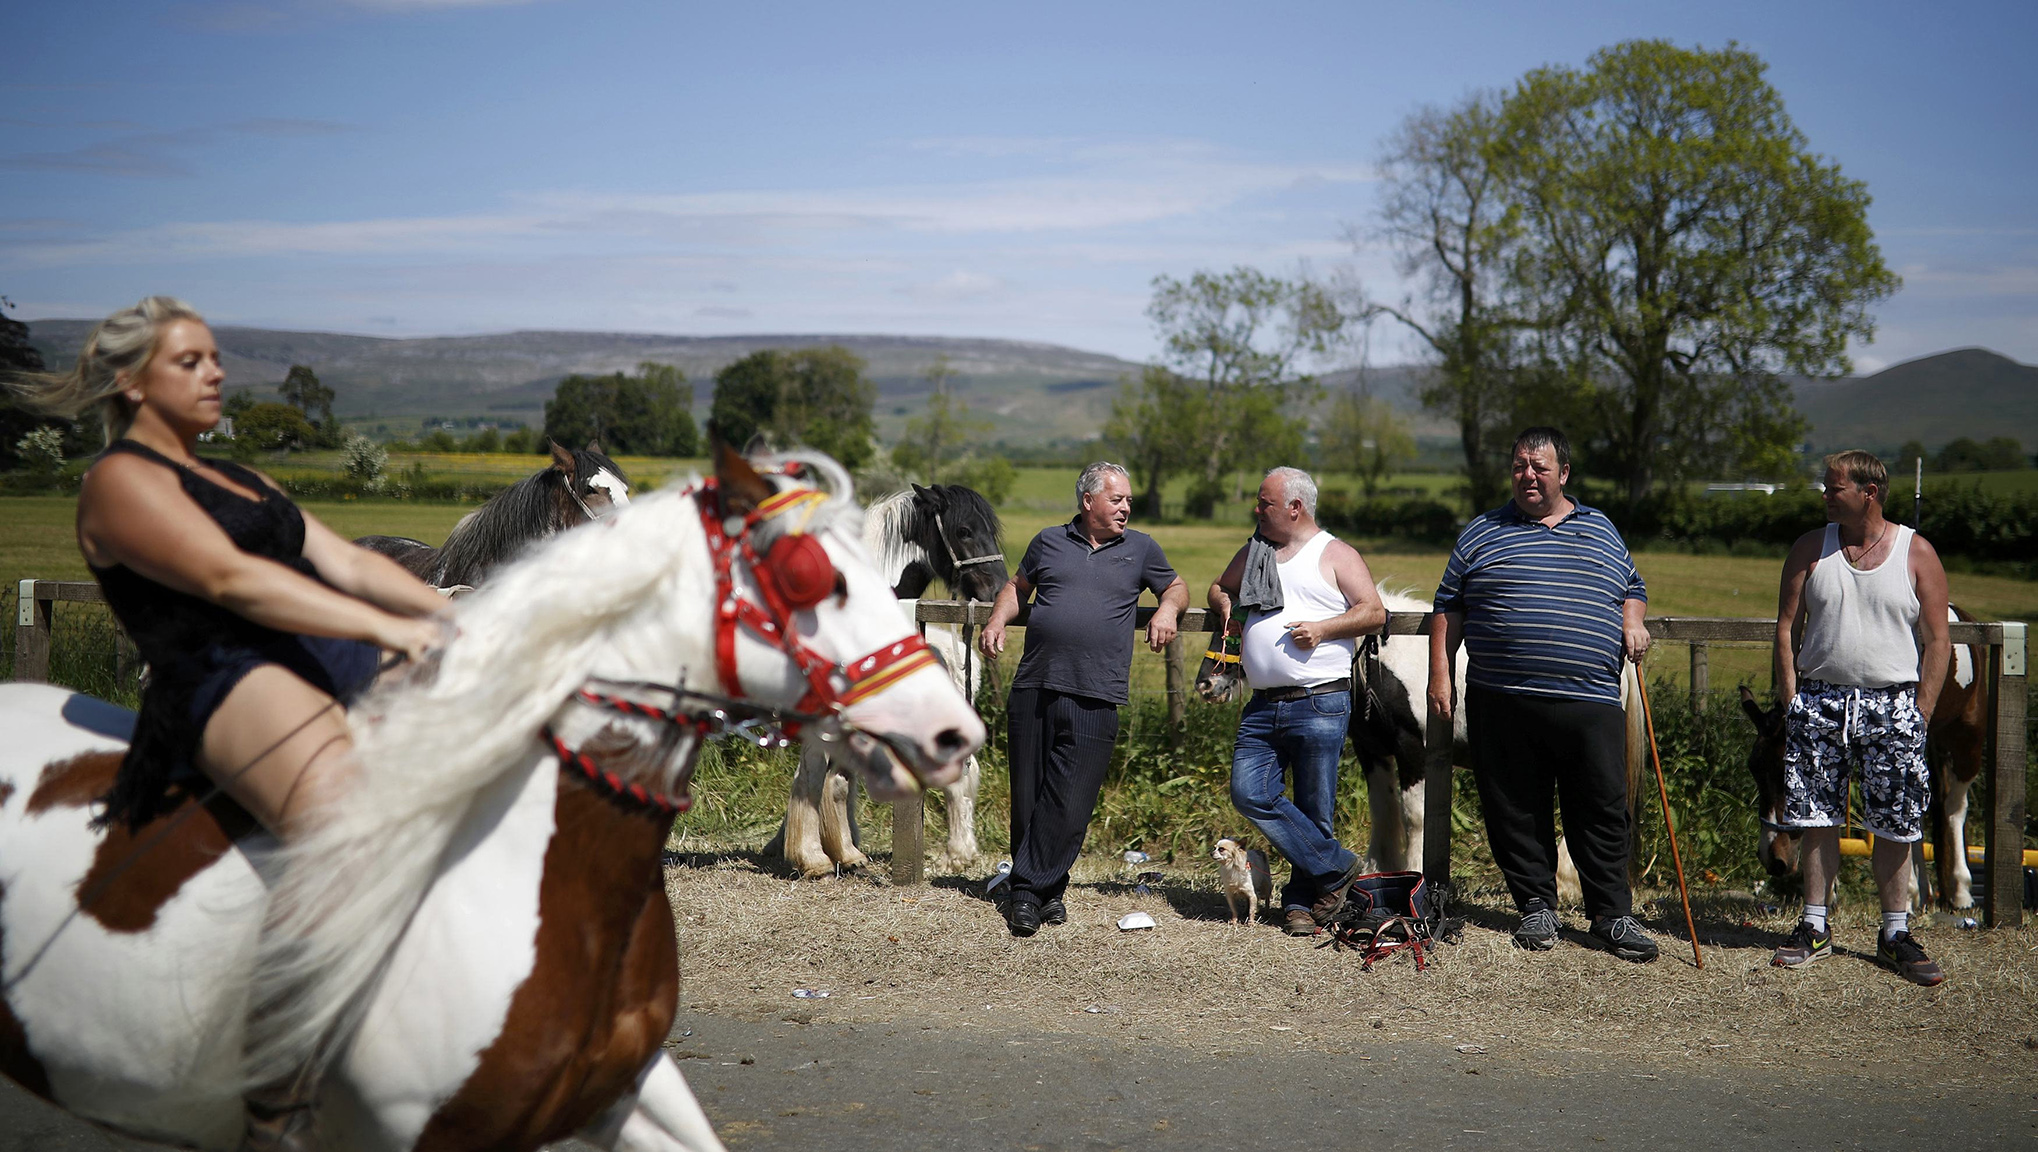 Members of the traveller community watch as horses are ridden along the road during the horse fair in Appleby-in-Westmorland, northern Britain.